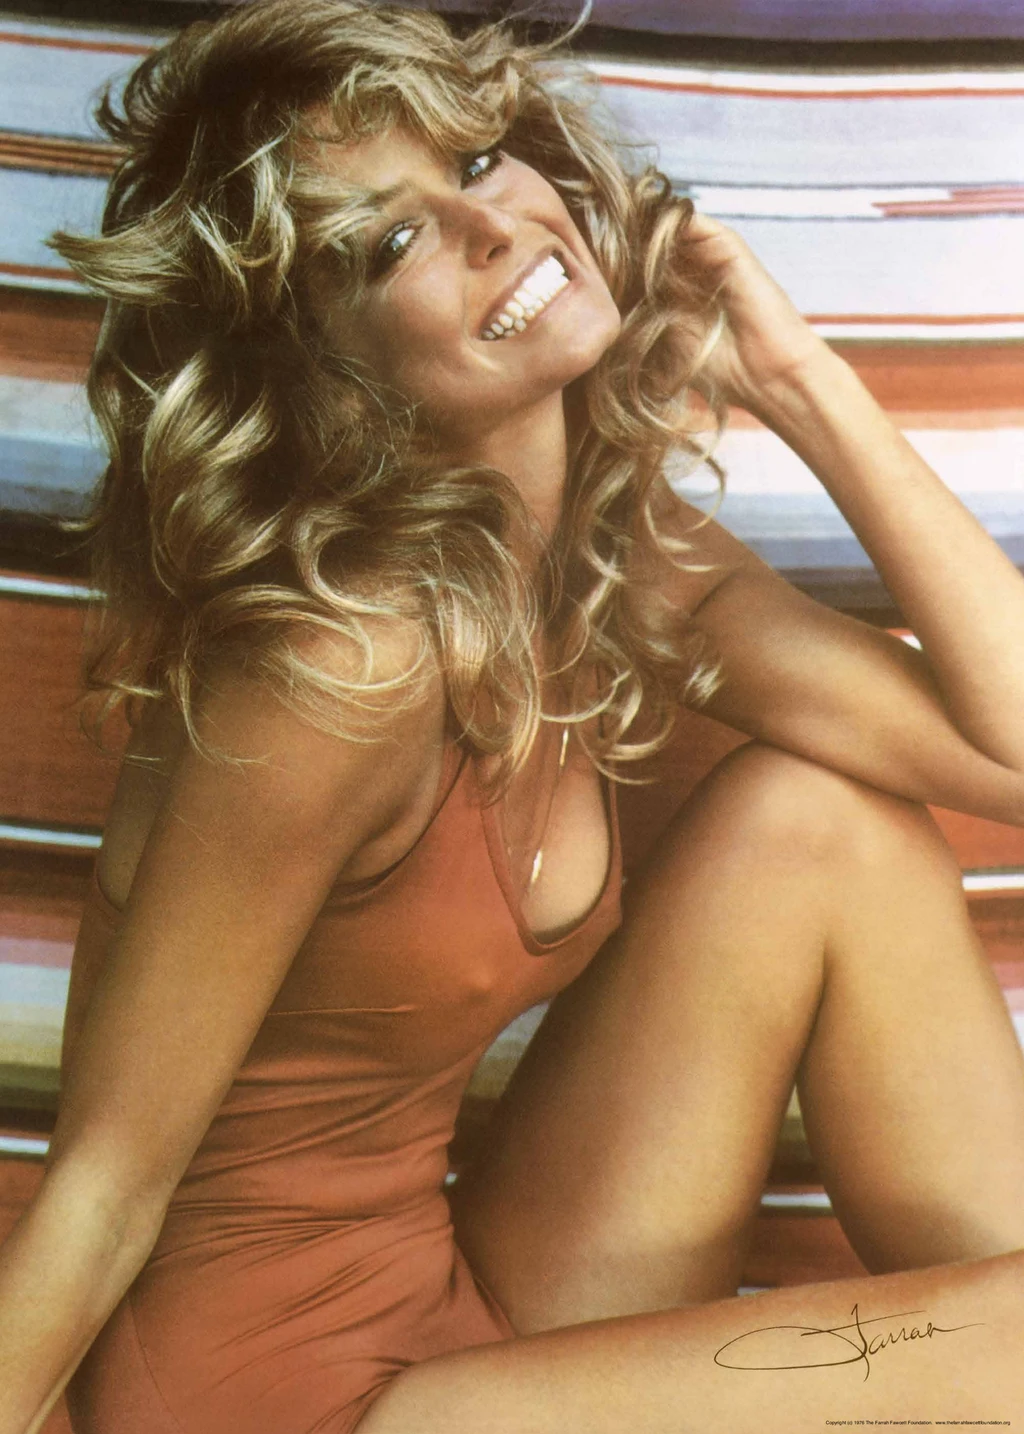 Farrah Fawcett's iconic look is a form of a shag! It's got loads of visible layers in the front that transition into longer layers in the back. Her haircut inspired the 90's staple, the Rachel, and the modern shag we're seeing in 2020.